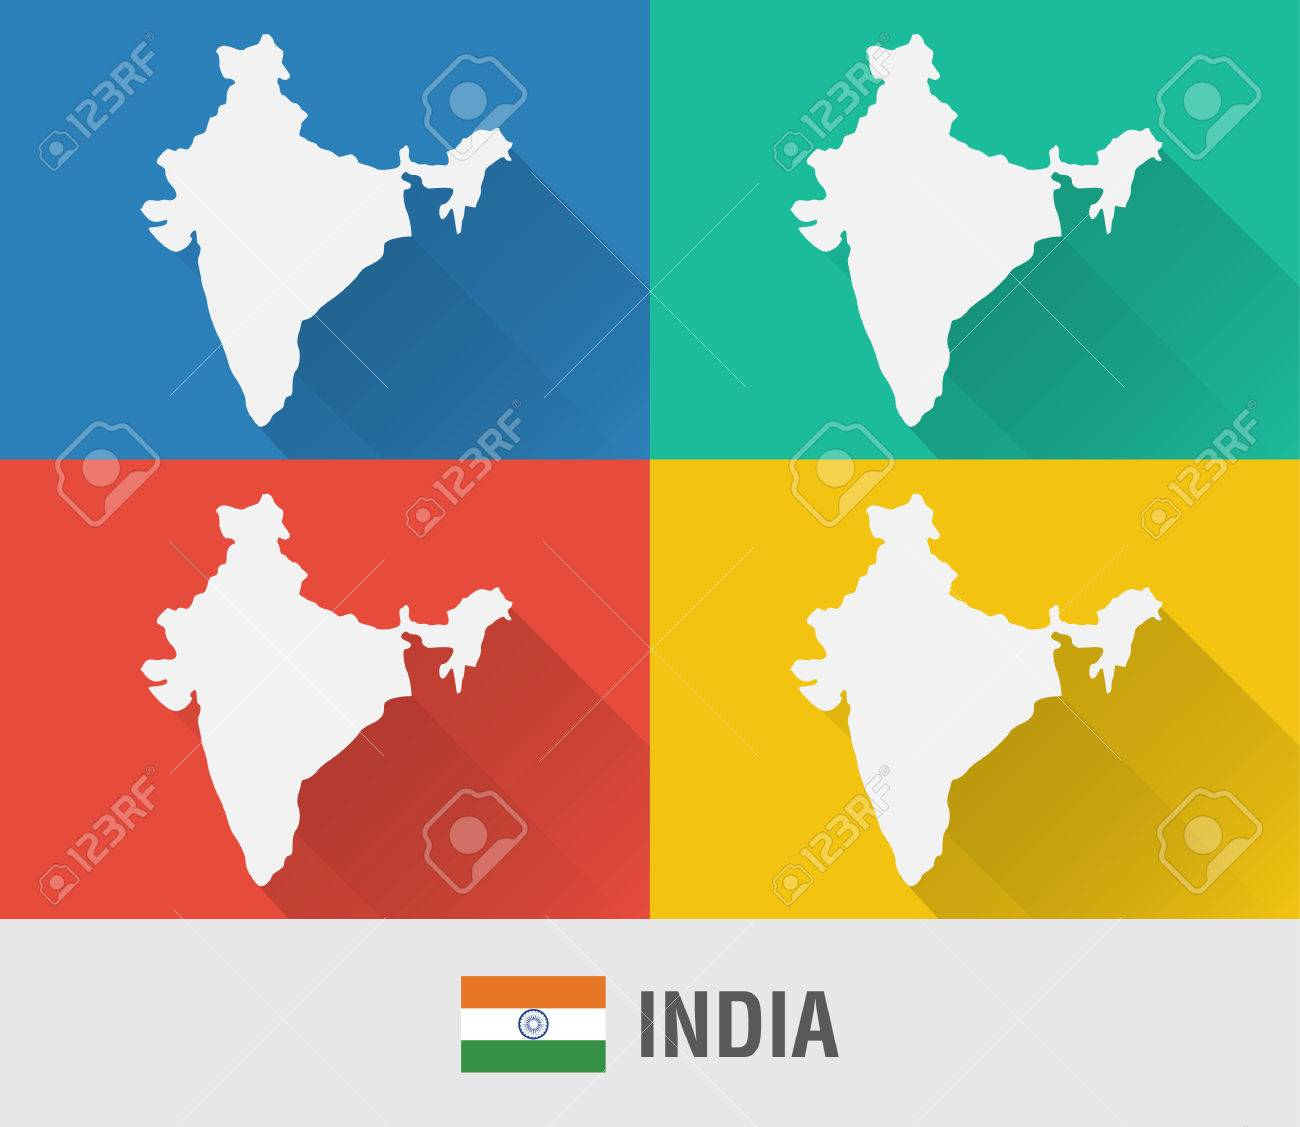 India world map in flat style with 4 colors modern map design india world map in flat style with 4 colors modern map design stock vector gumiabroncs Gallery